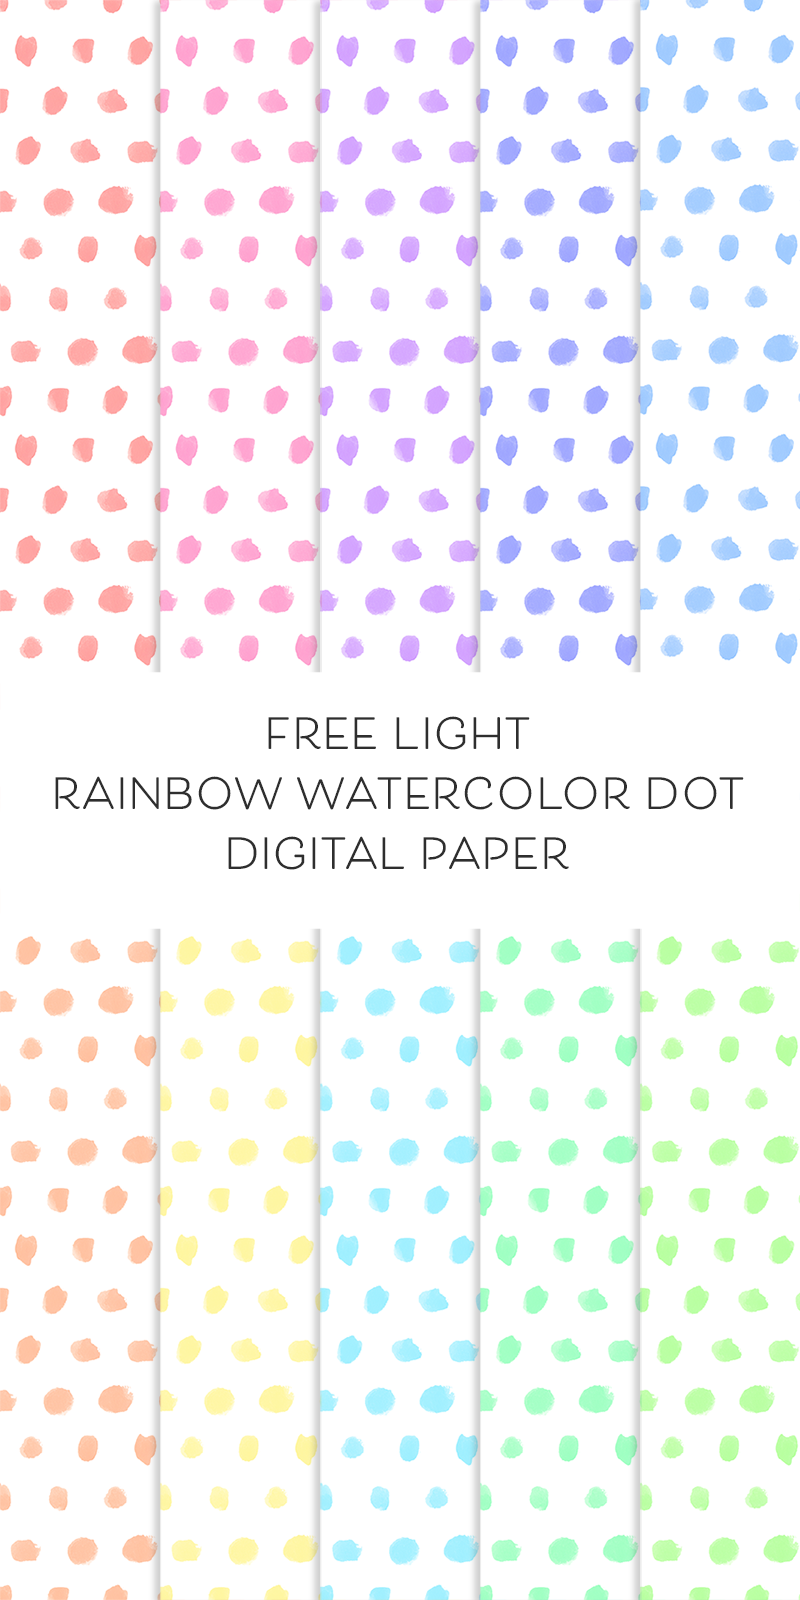 graphic regarding Free Printable Dot Paper titled Cost-free Electronic Backgrounds: Light-weight Rainbow Watercolor Dot Paper